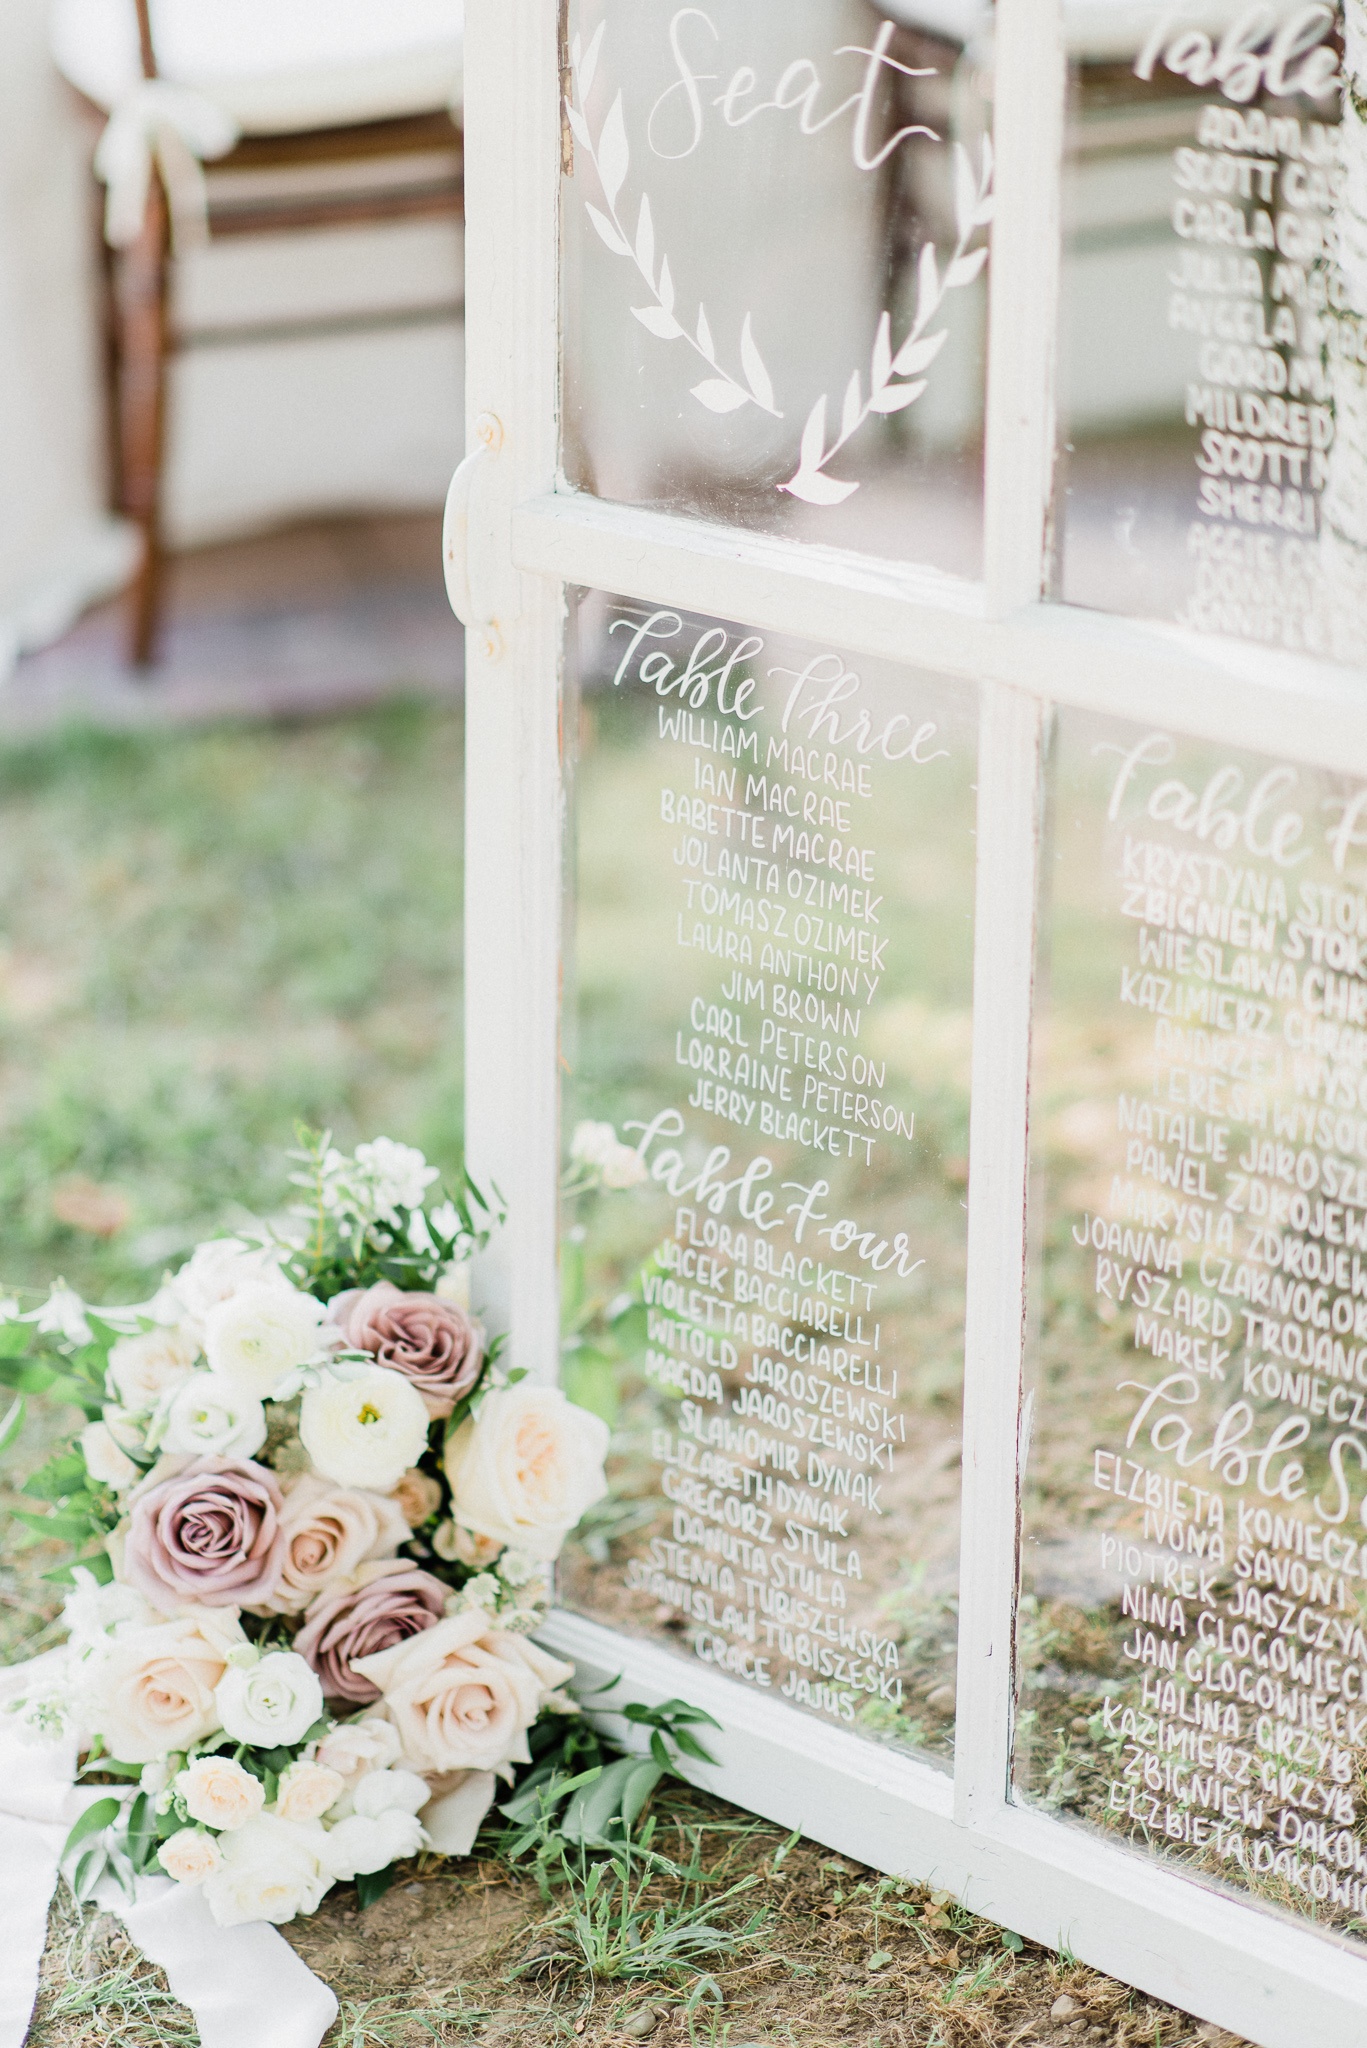 Gracewood Estates at Kurtz Orchards wedding by Jenn Kavanagh Photography